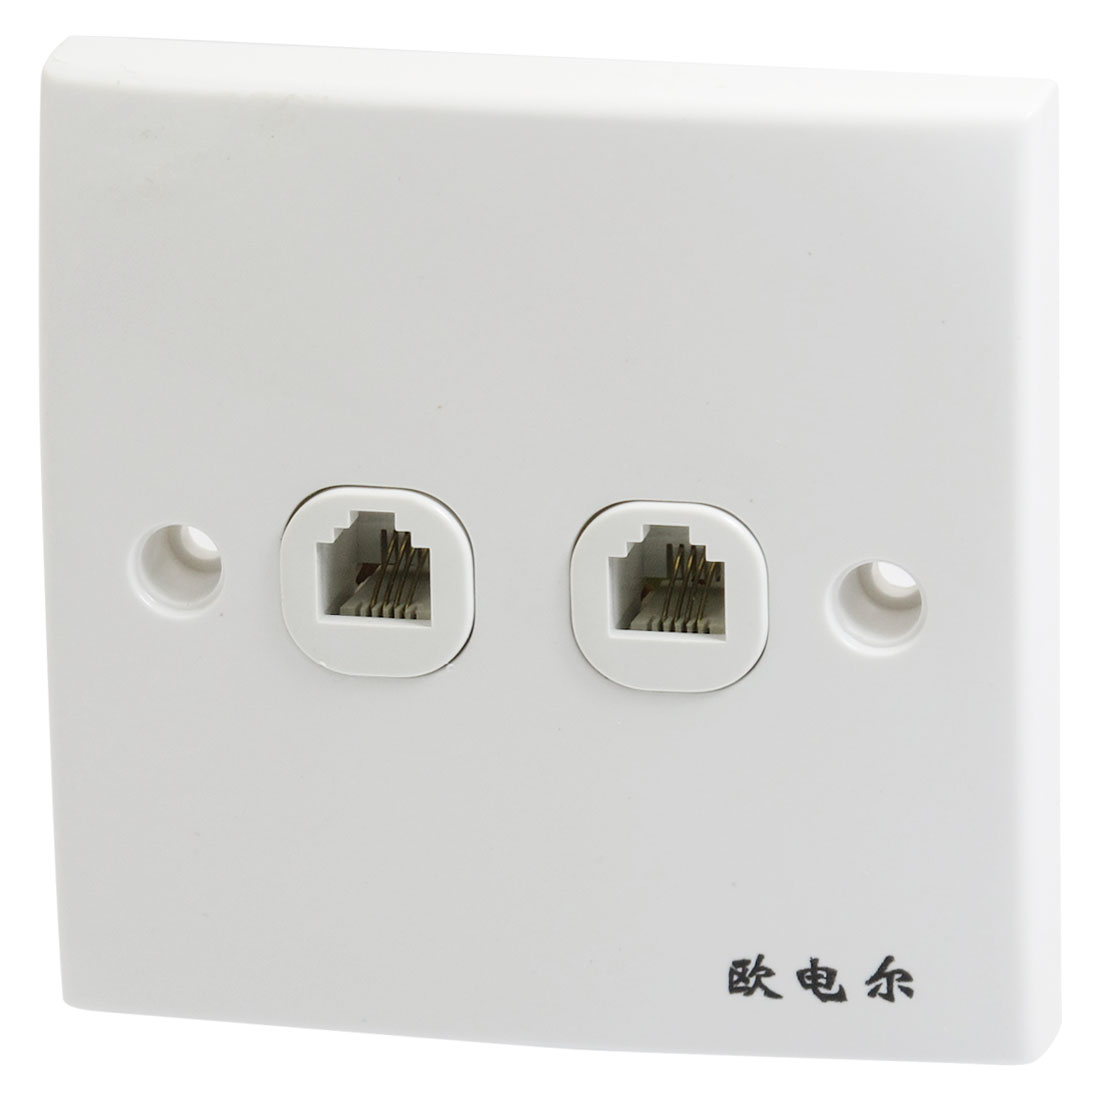 White Plastic RJ11 Telephone Phone Outlet Socket Wall Plate